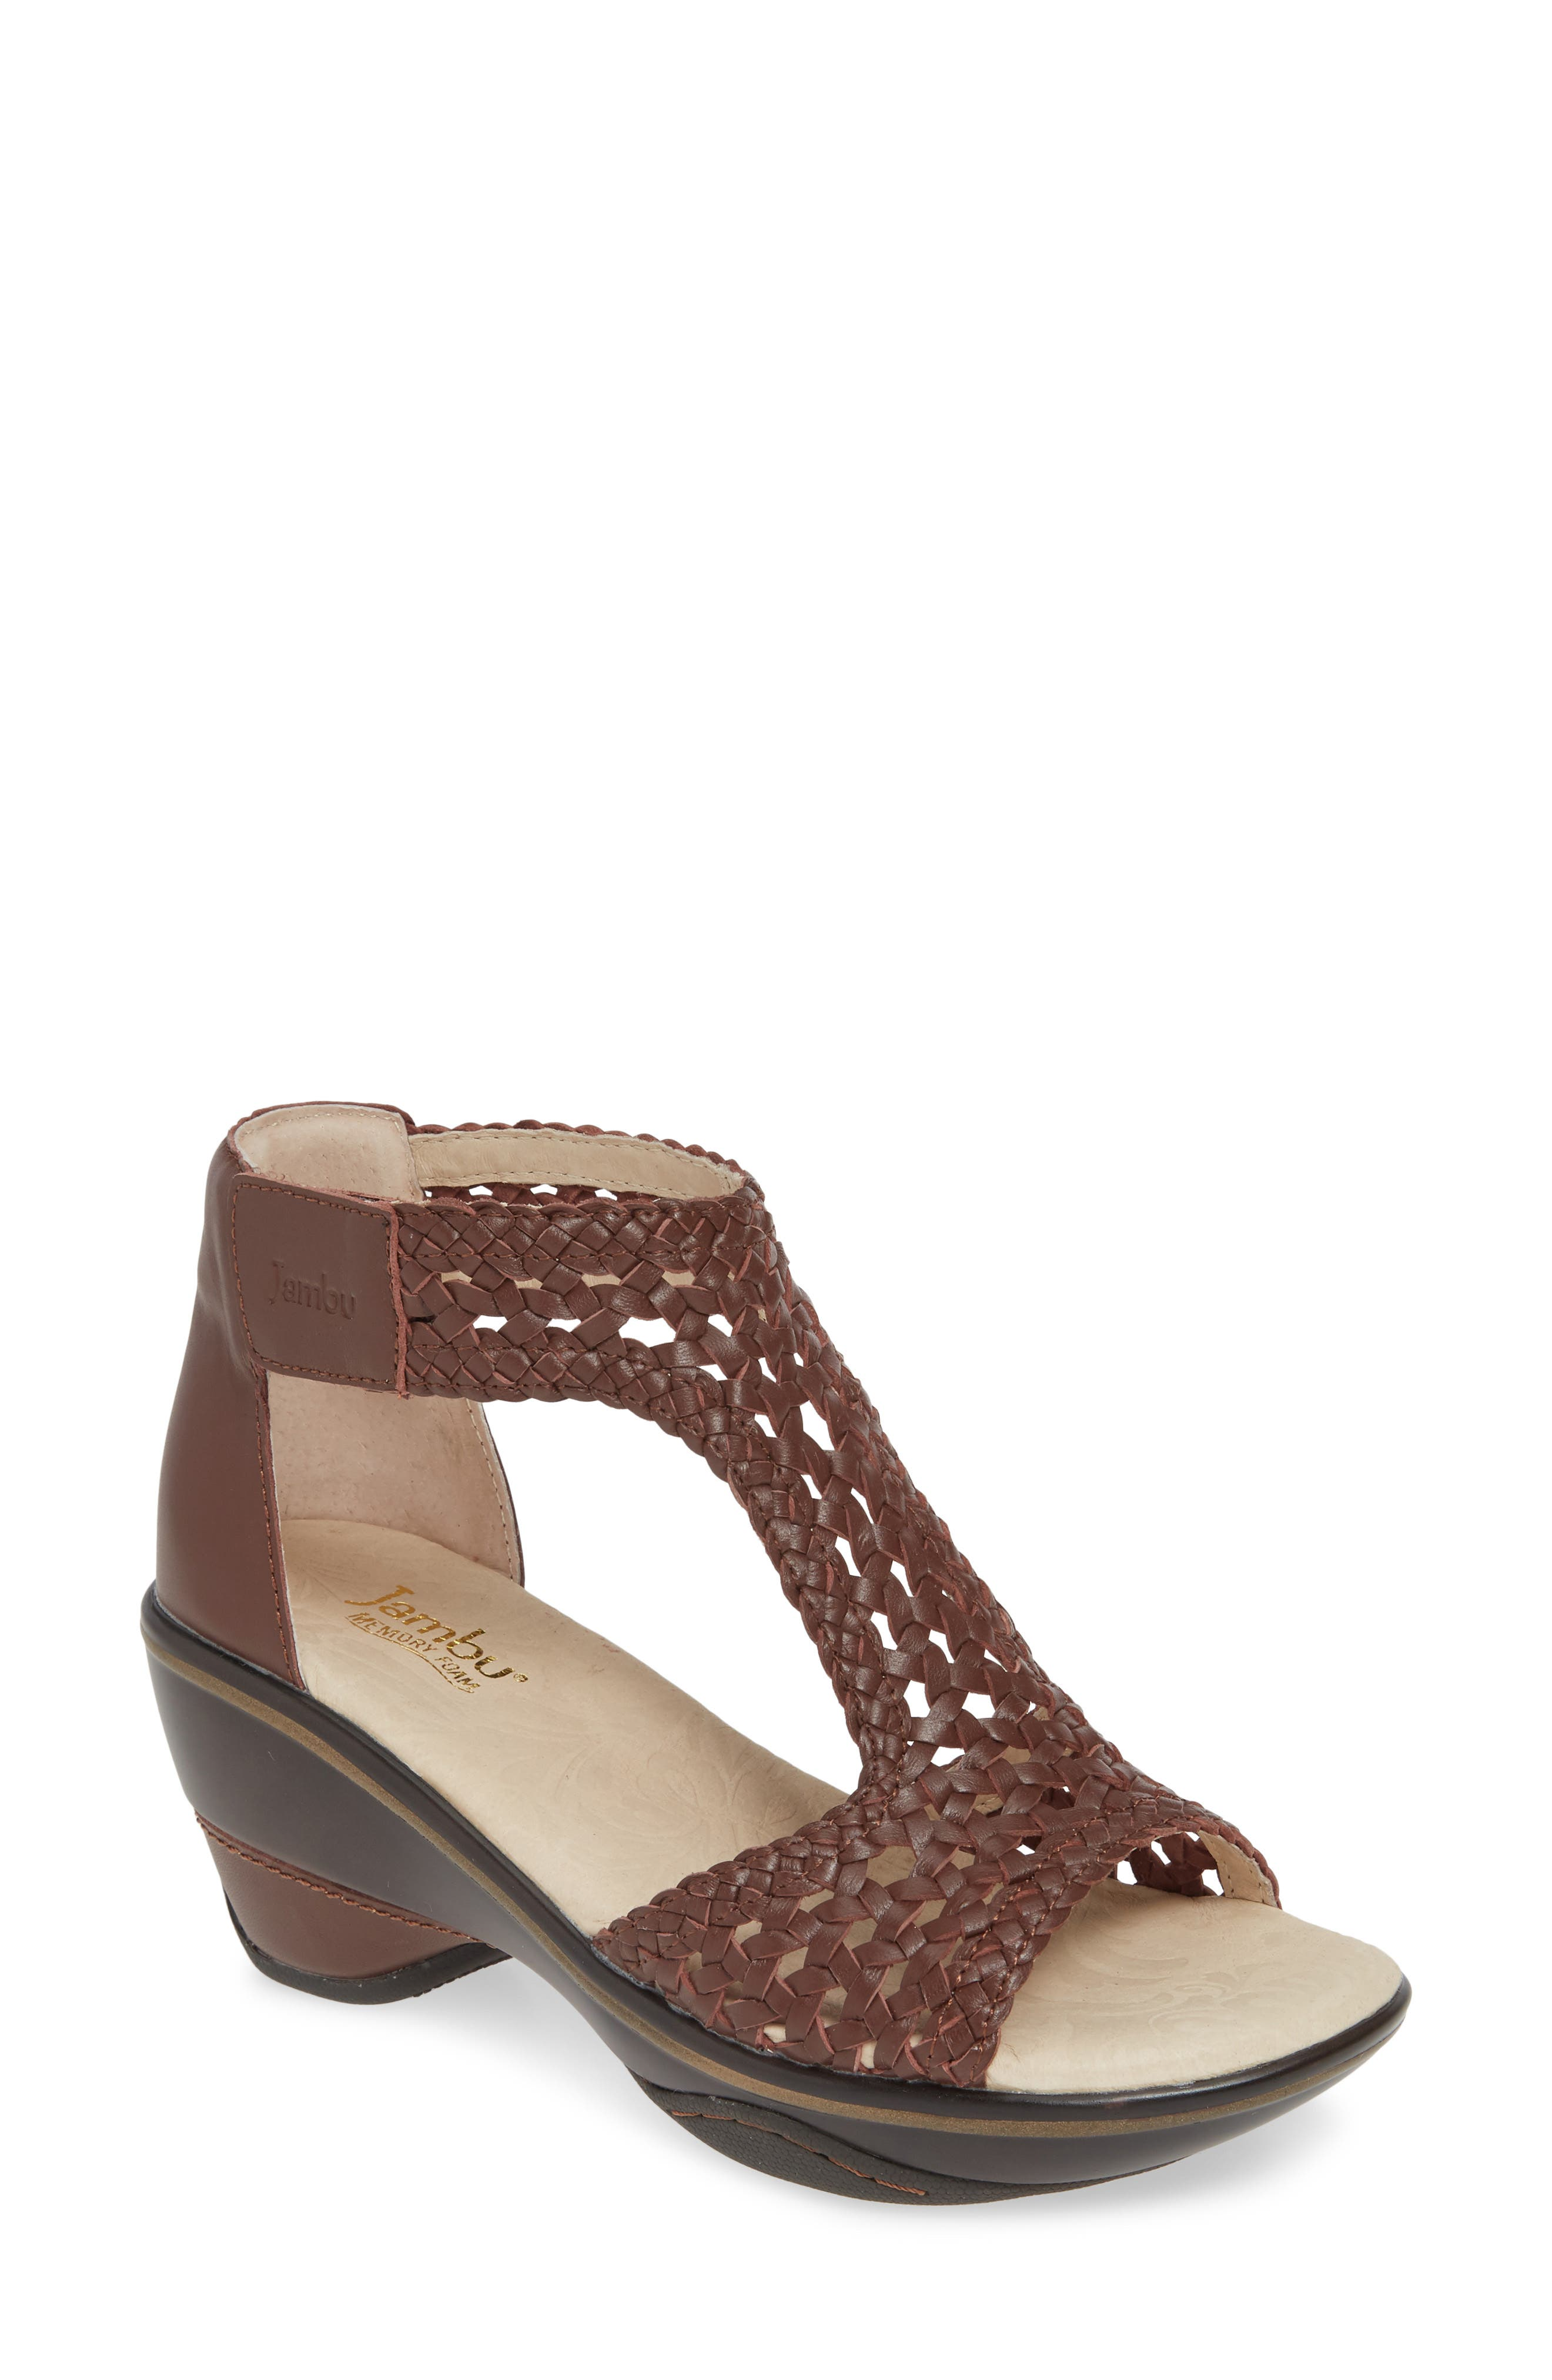 Jambu Sandy T-Strap Sandal- Brown